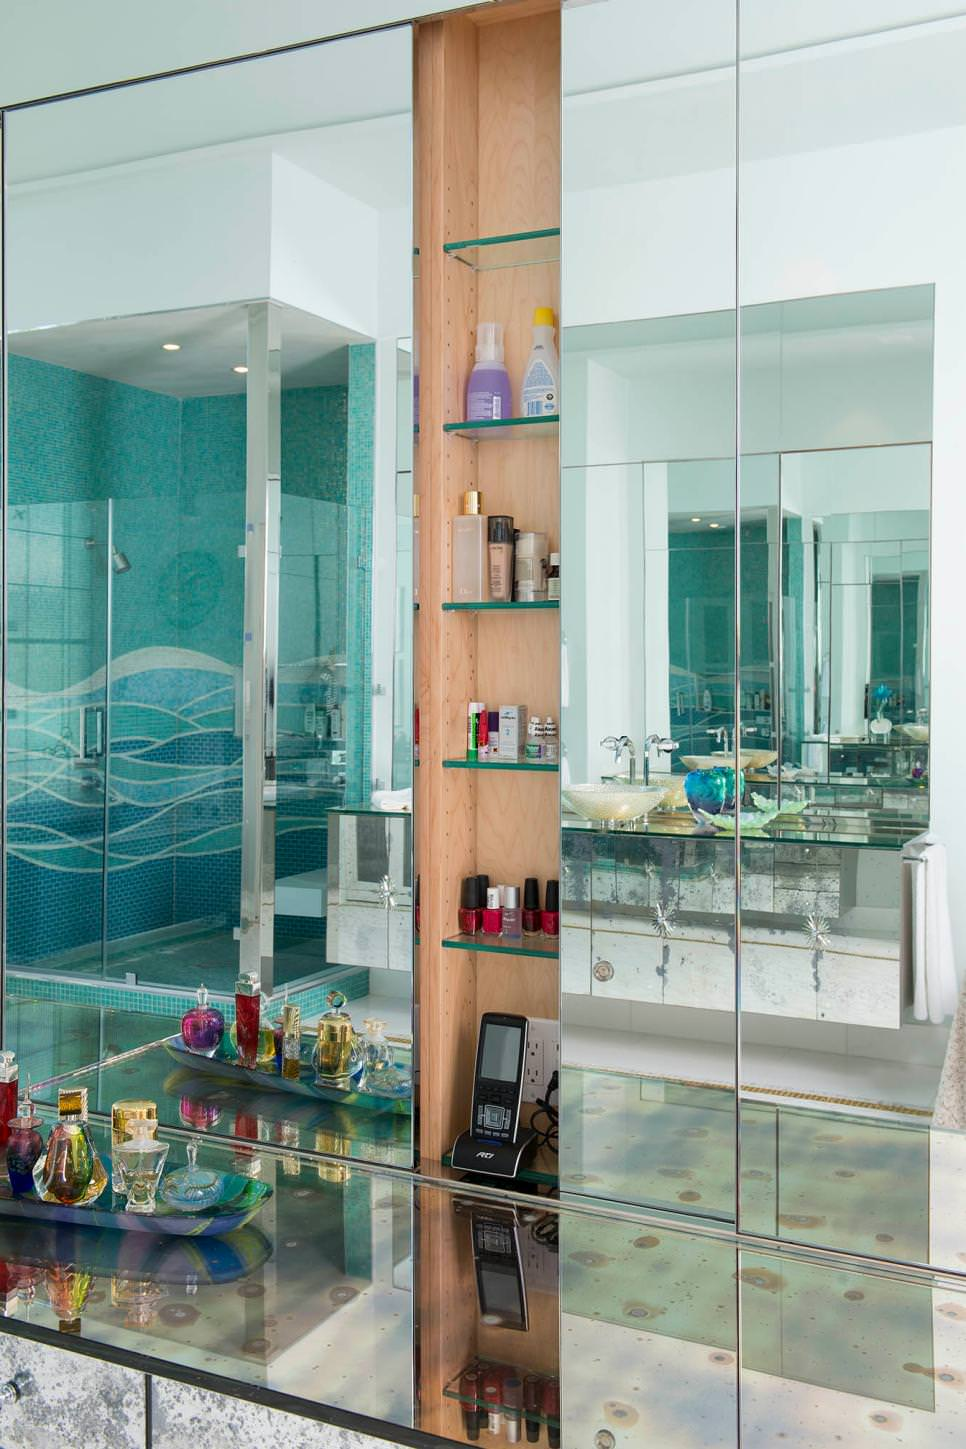 24+ Bathroom Glass Shelves Designs, Ideas | Design Trends - Premium ...